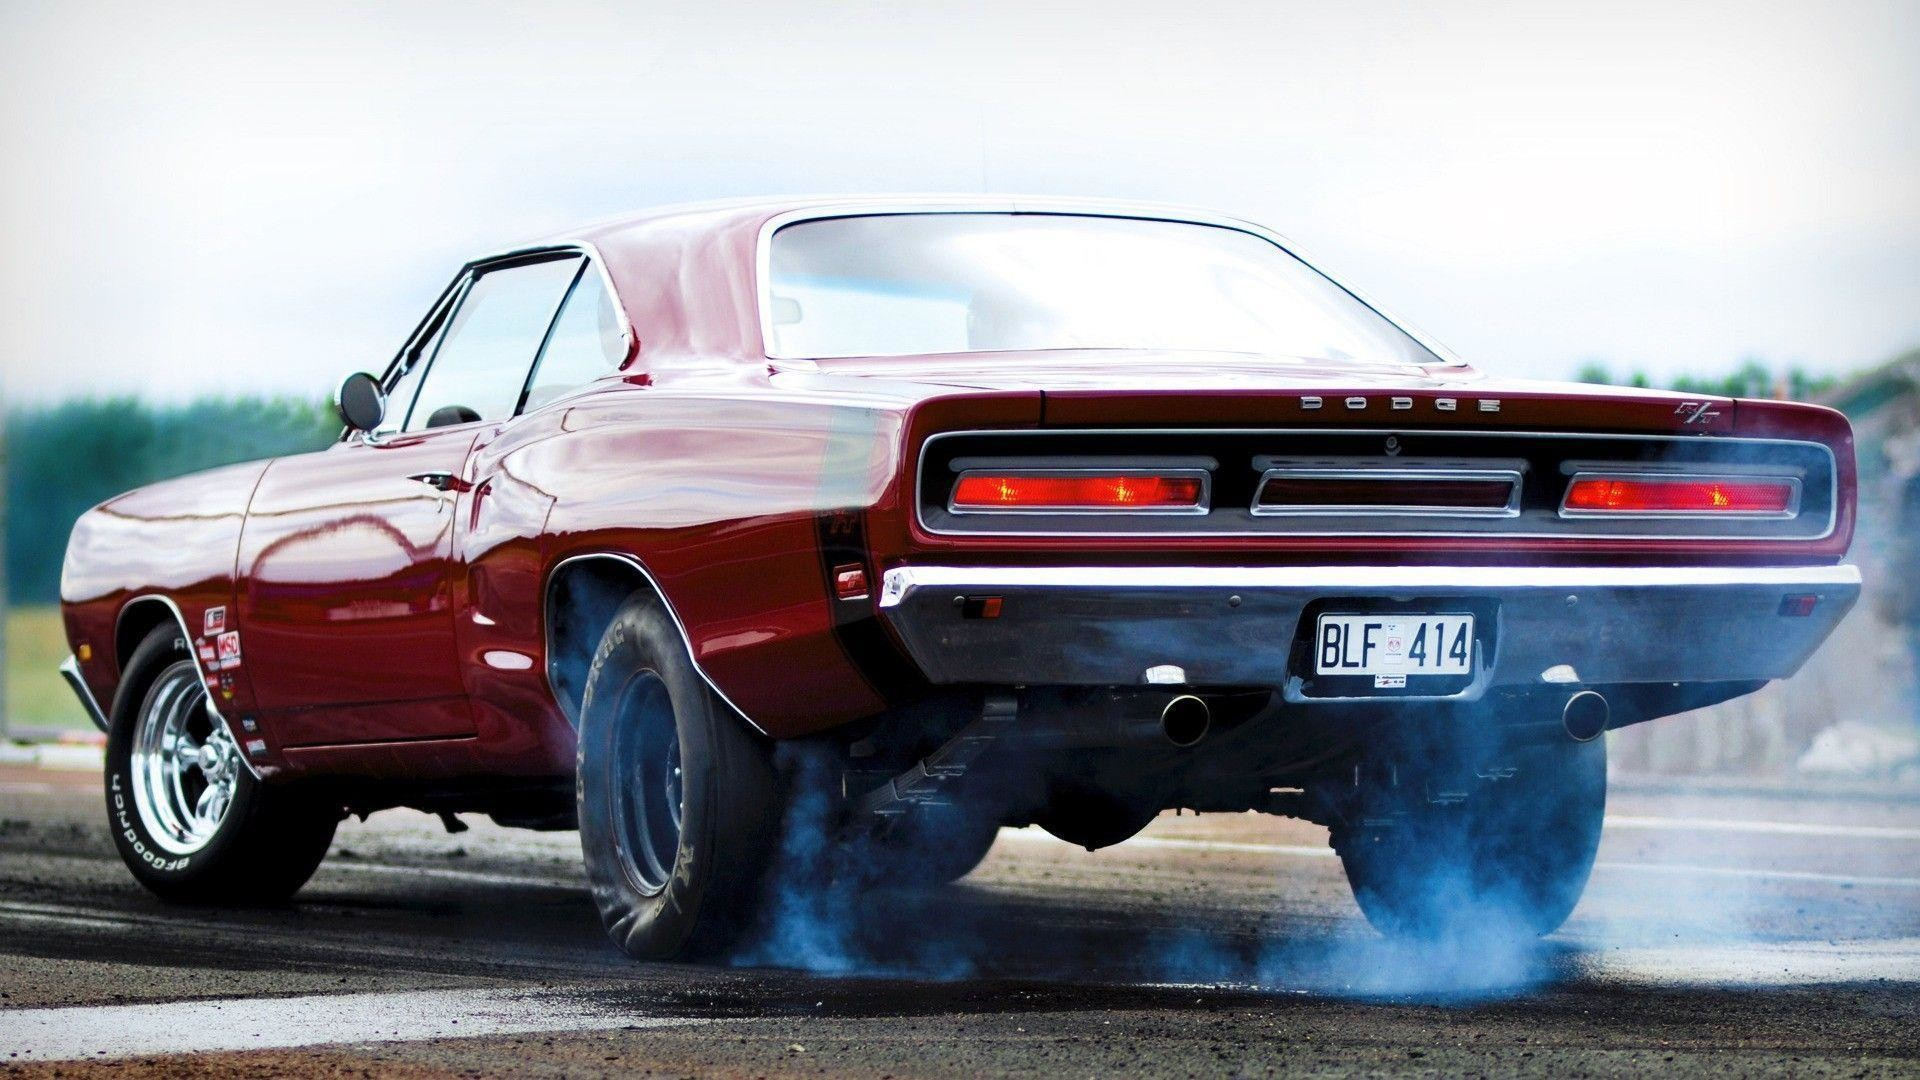 Res: 1920x1080, Images For > Drag Cars Wallpapers